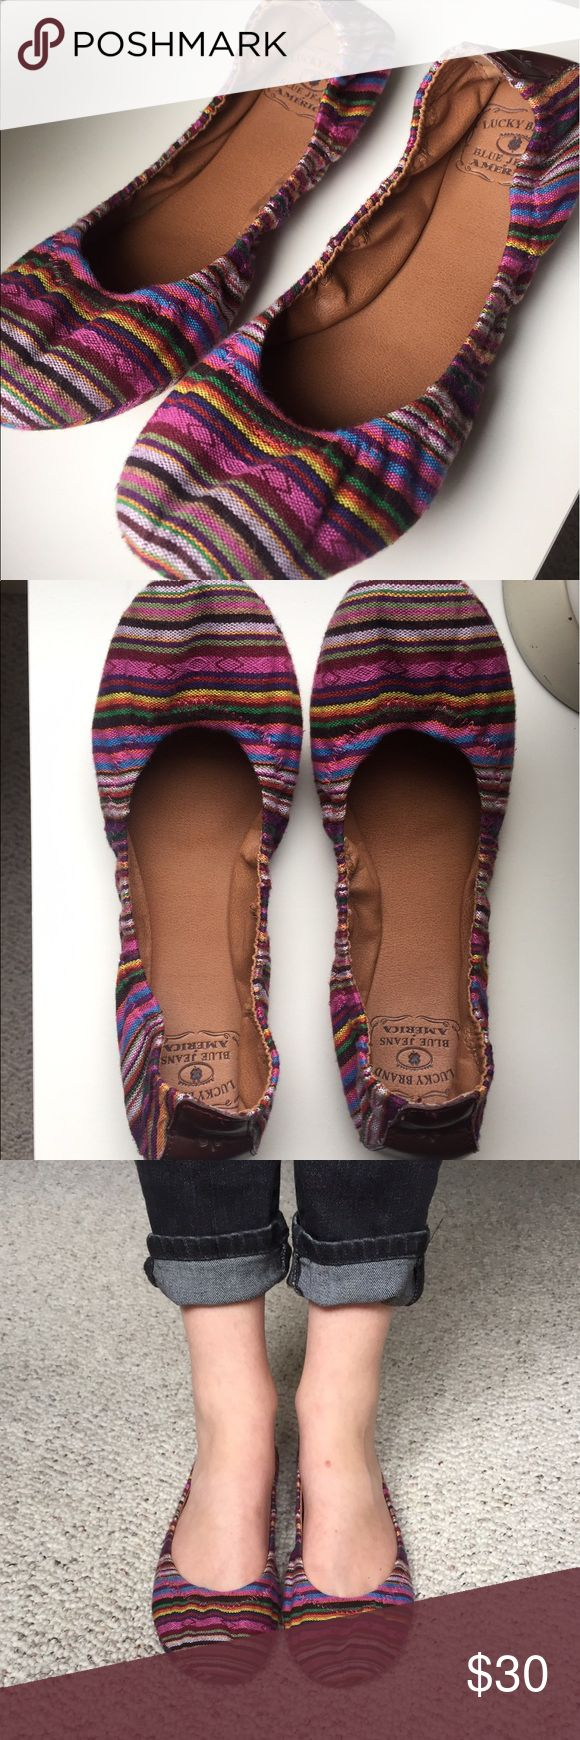 Lucky Brand Ballet Flats Barely worn Lucky Brand Multi Colored Ballet Flats. Very comfortable and versatile. Lucky Brand Shoes Flats & Loafers